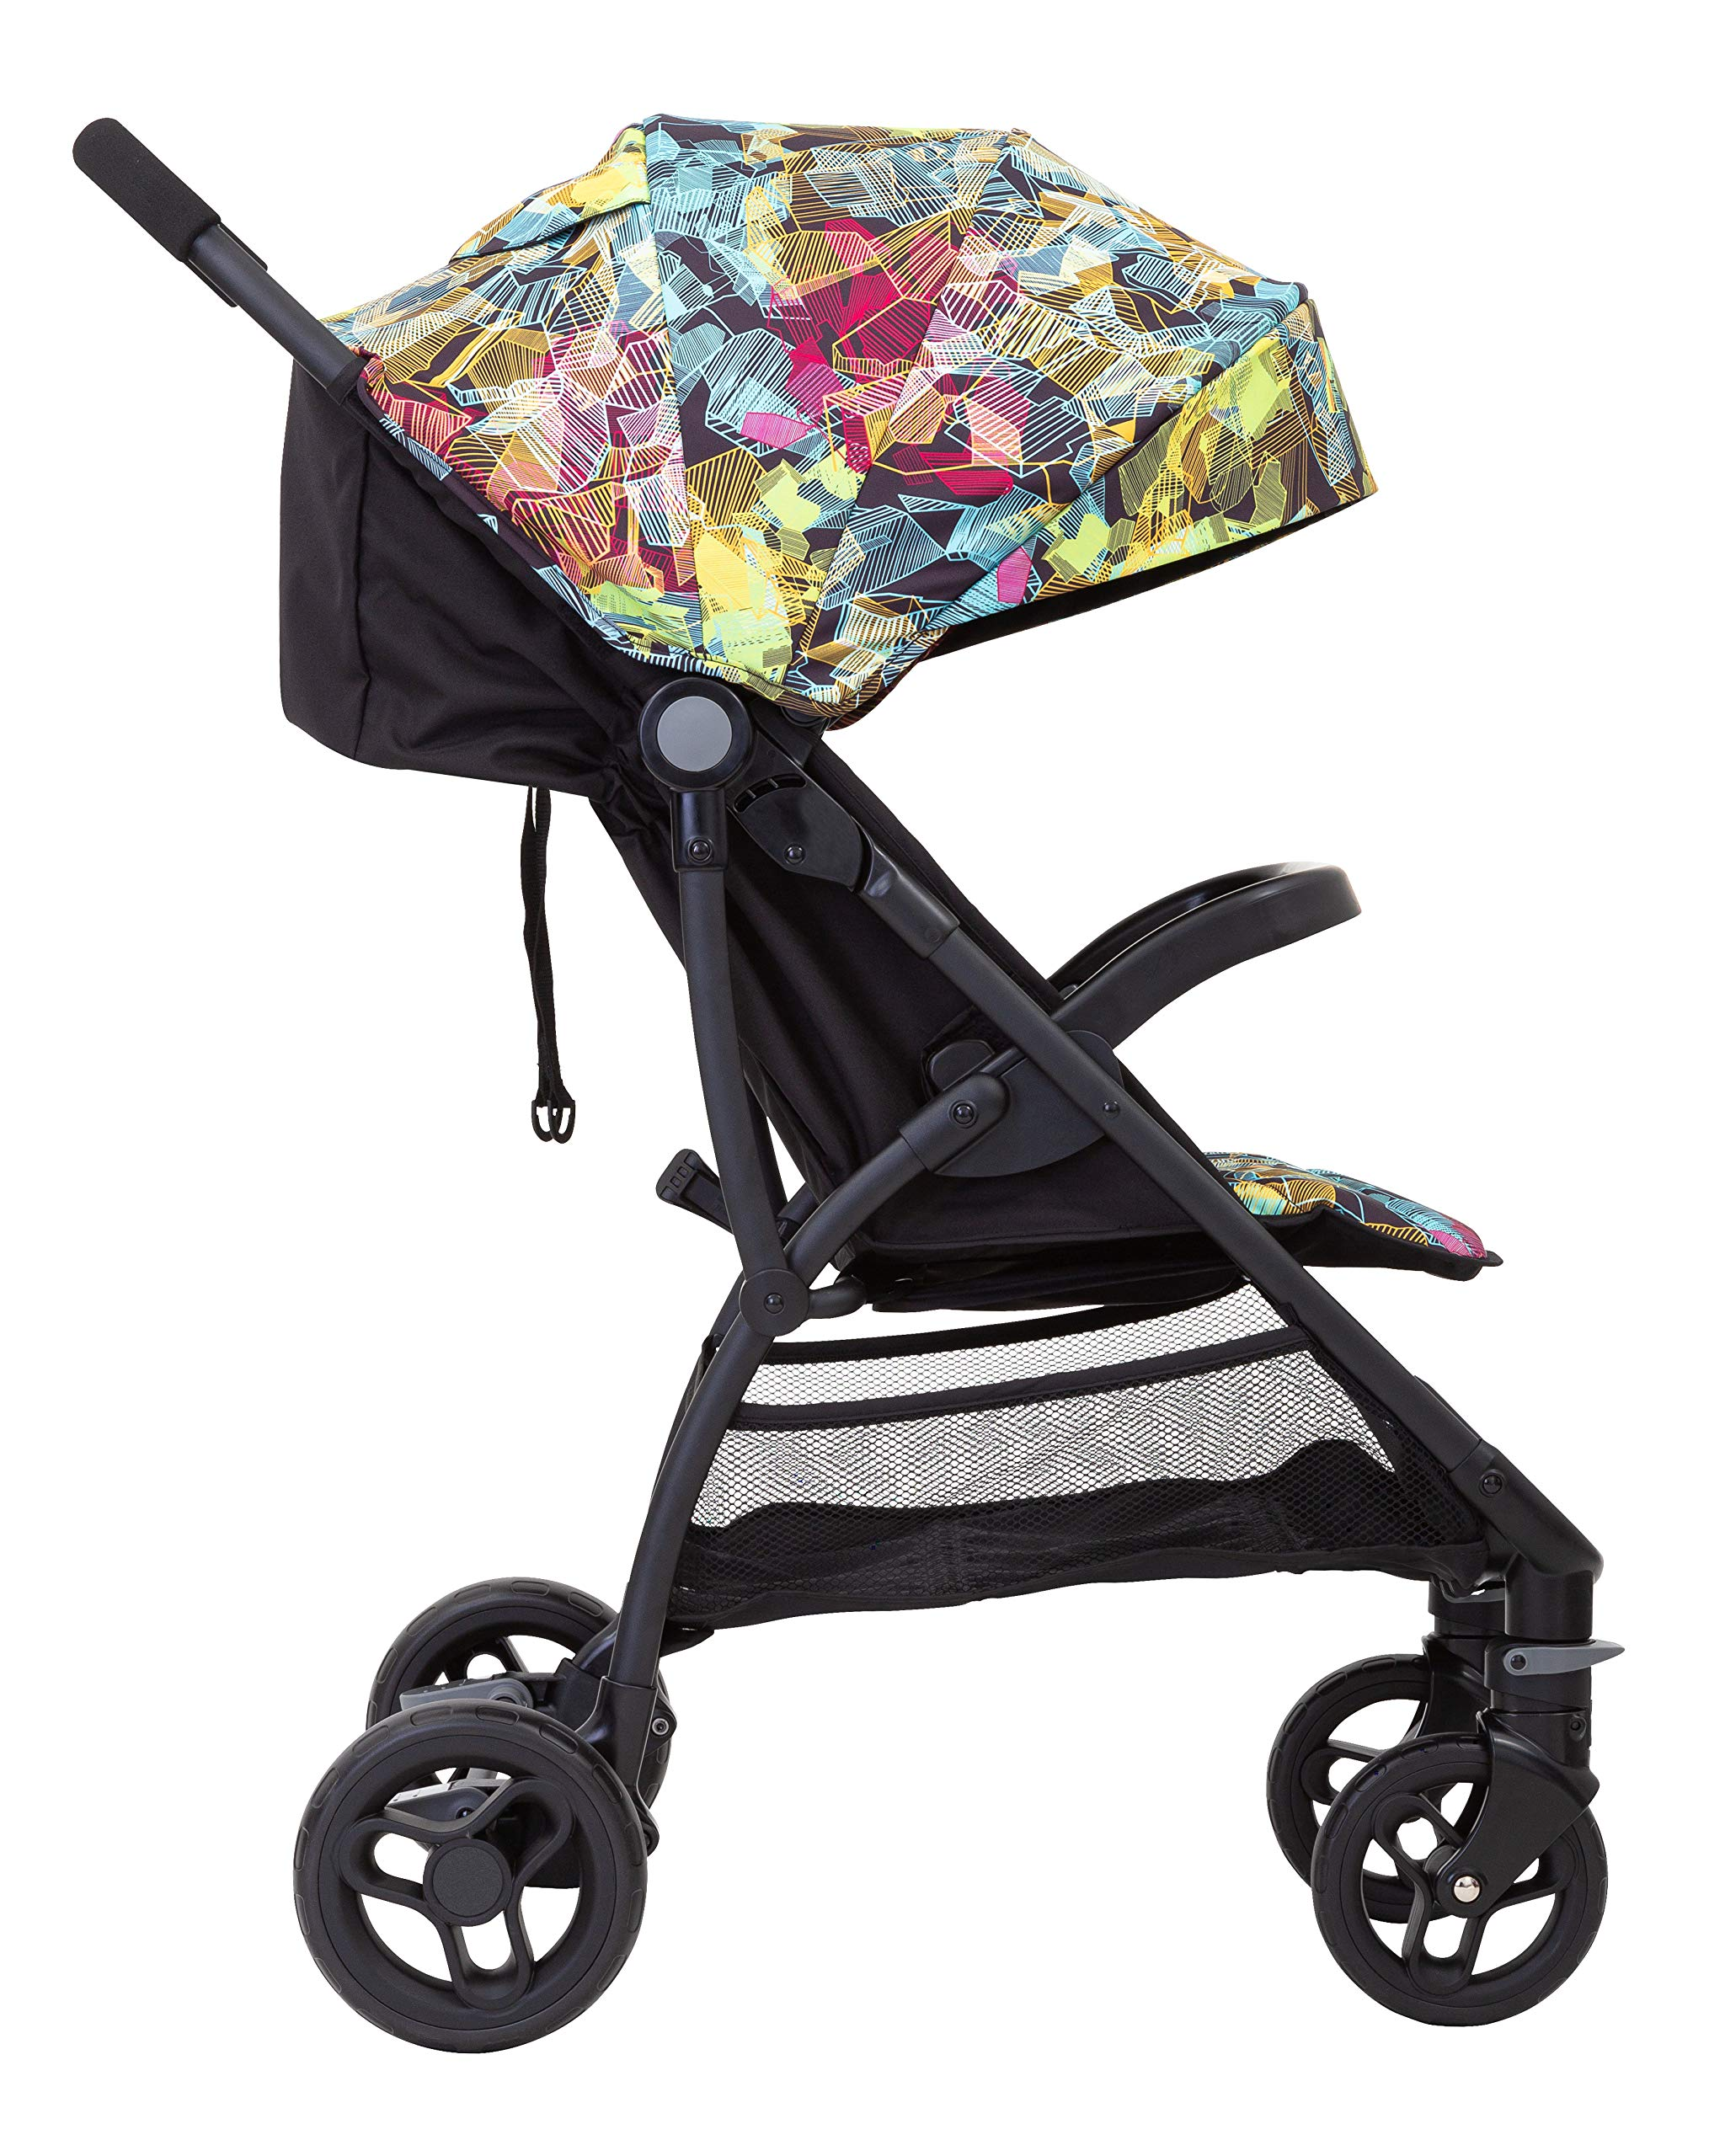 Graco Breaze Lite Stroller, Kaleidoscope Graco From birth to 3 years approx. (0-15kg) Lightweight at only 6.5kg Click connect travel system compatible with graco snugride/snugessentials isize infant car seats 4